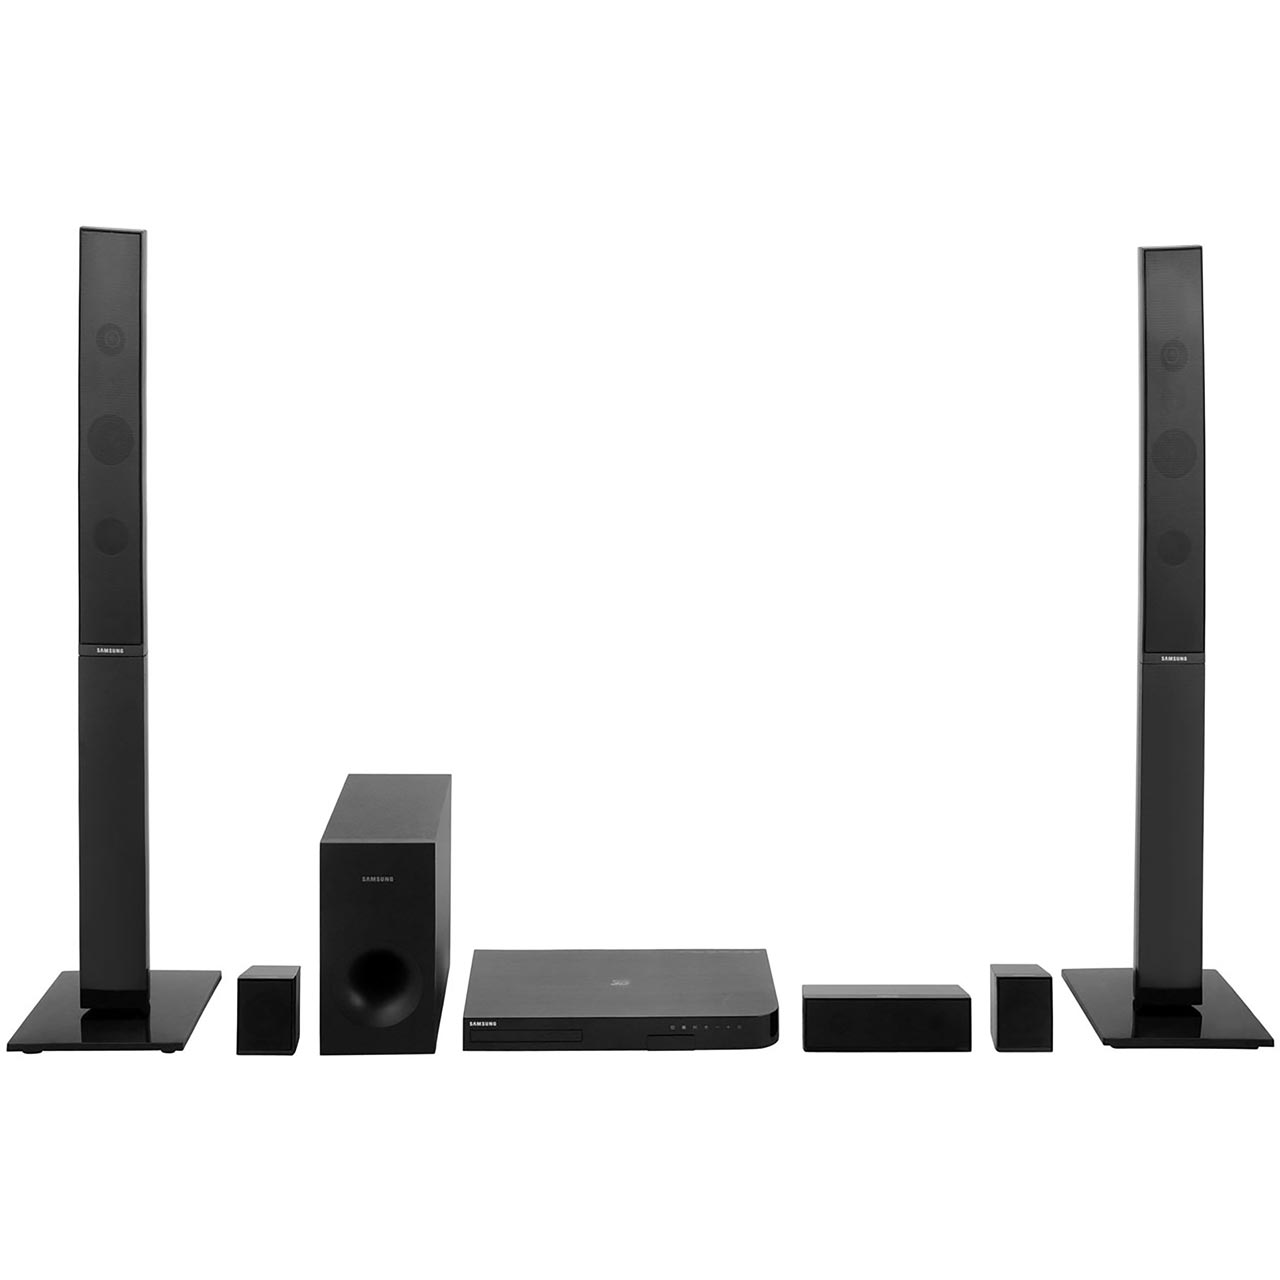 ht j4530 samsung home cinema system. Black Bedroom Furniture Sets. Home Design Ideas